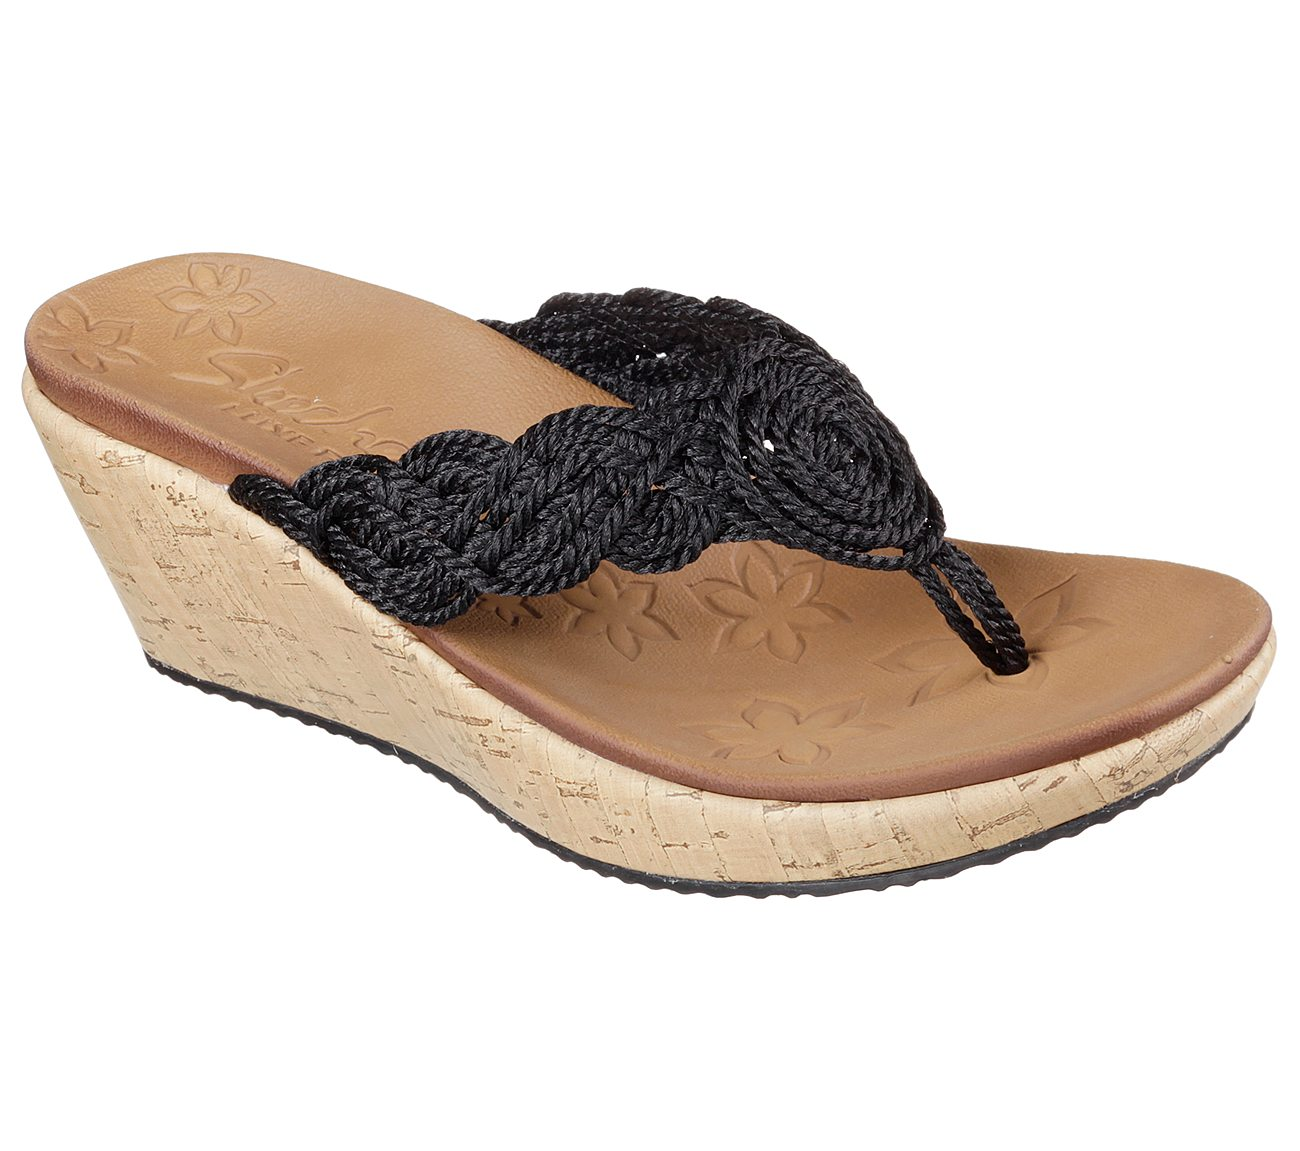 skechers thong sandals